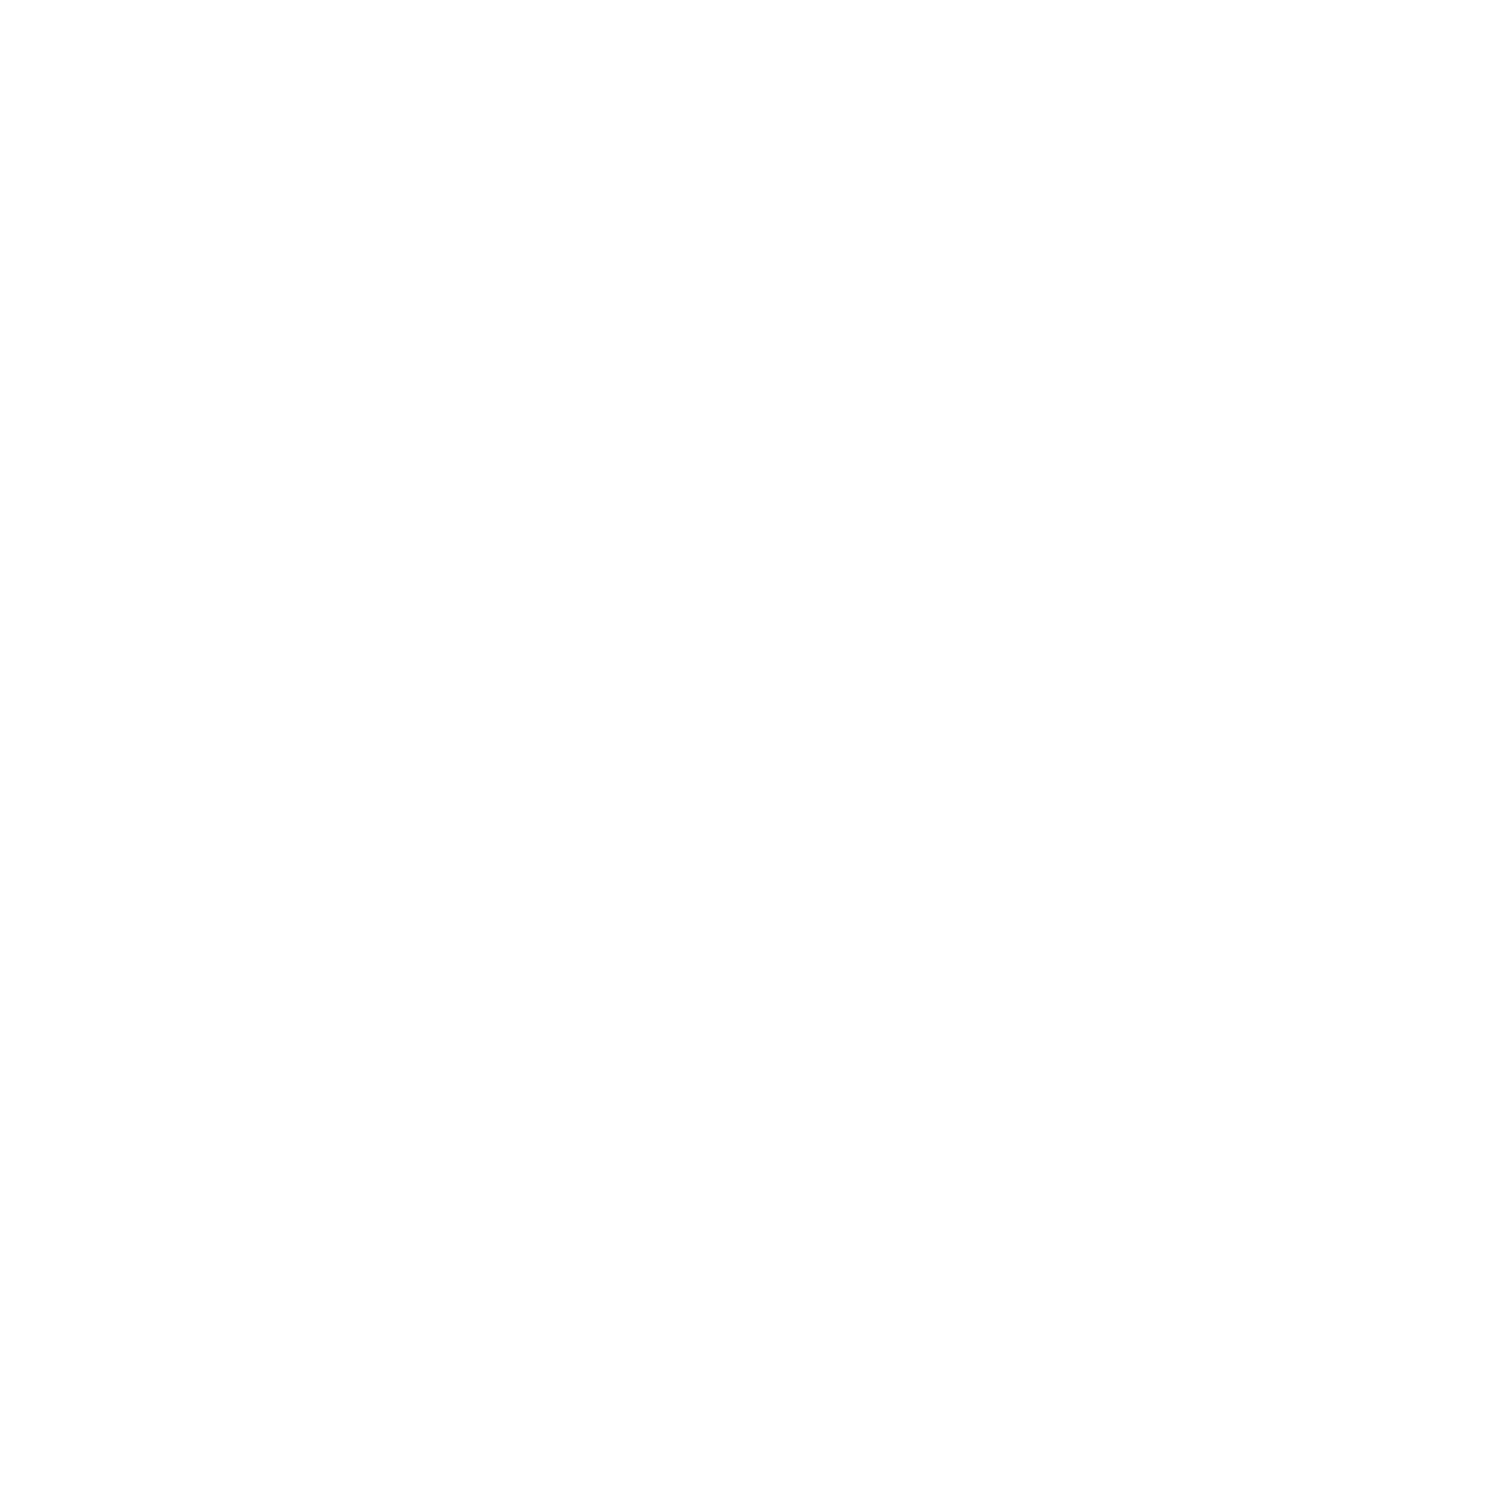 Welcome to TravisBoothman.com